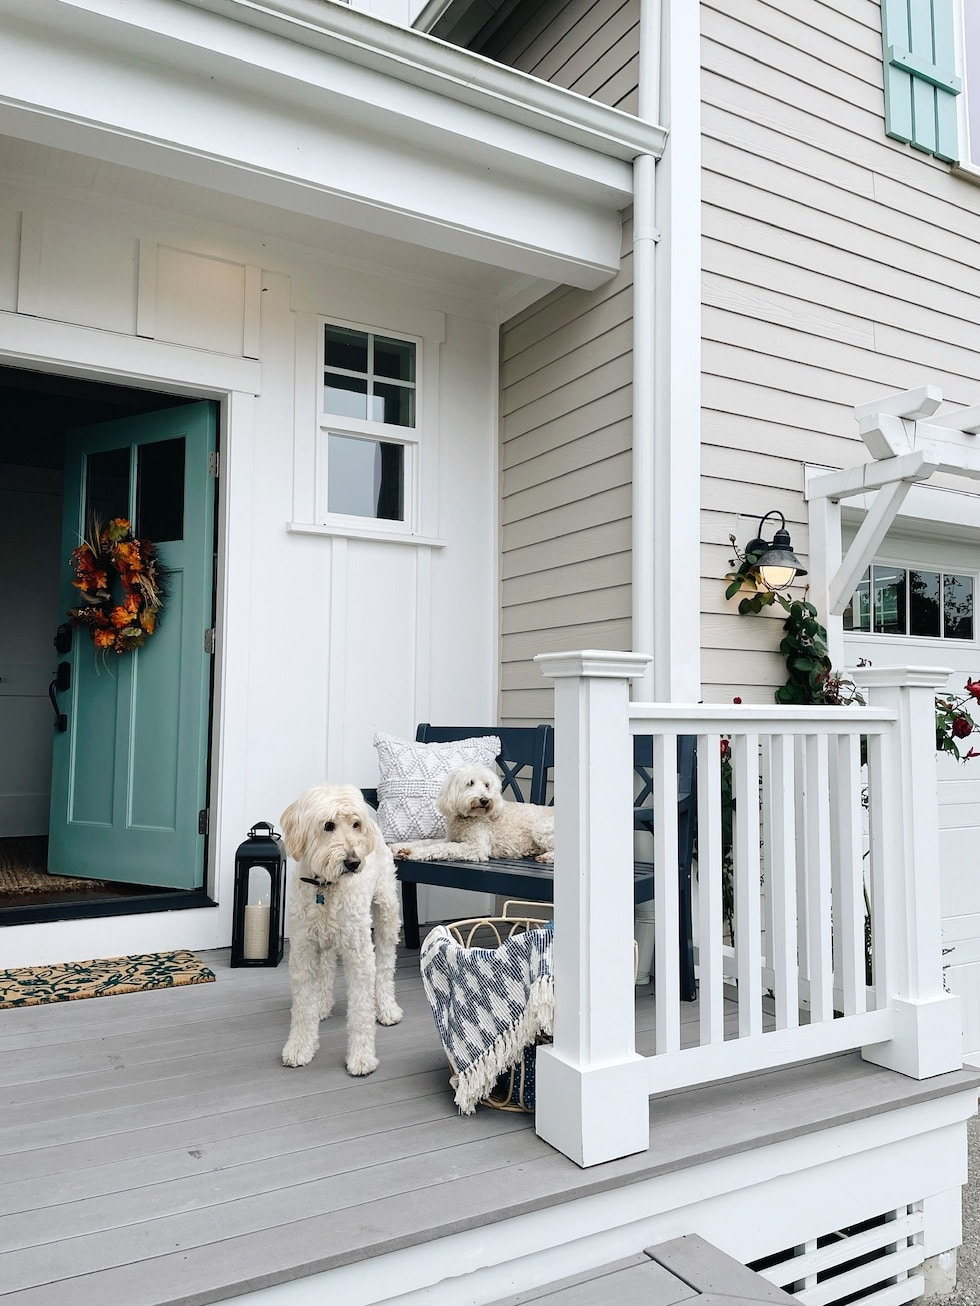 Decorating Our New Front Porch and Entry for Fall